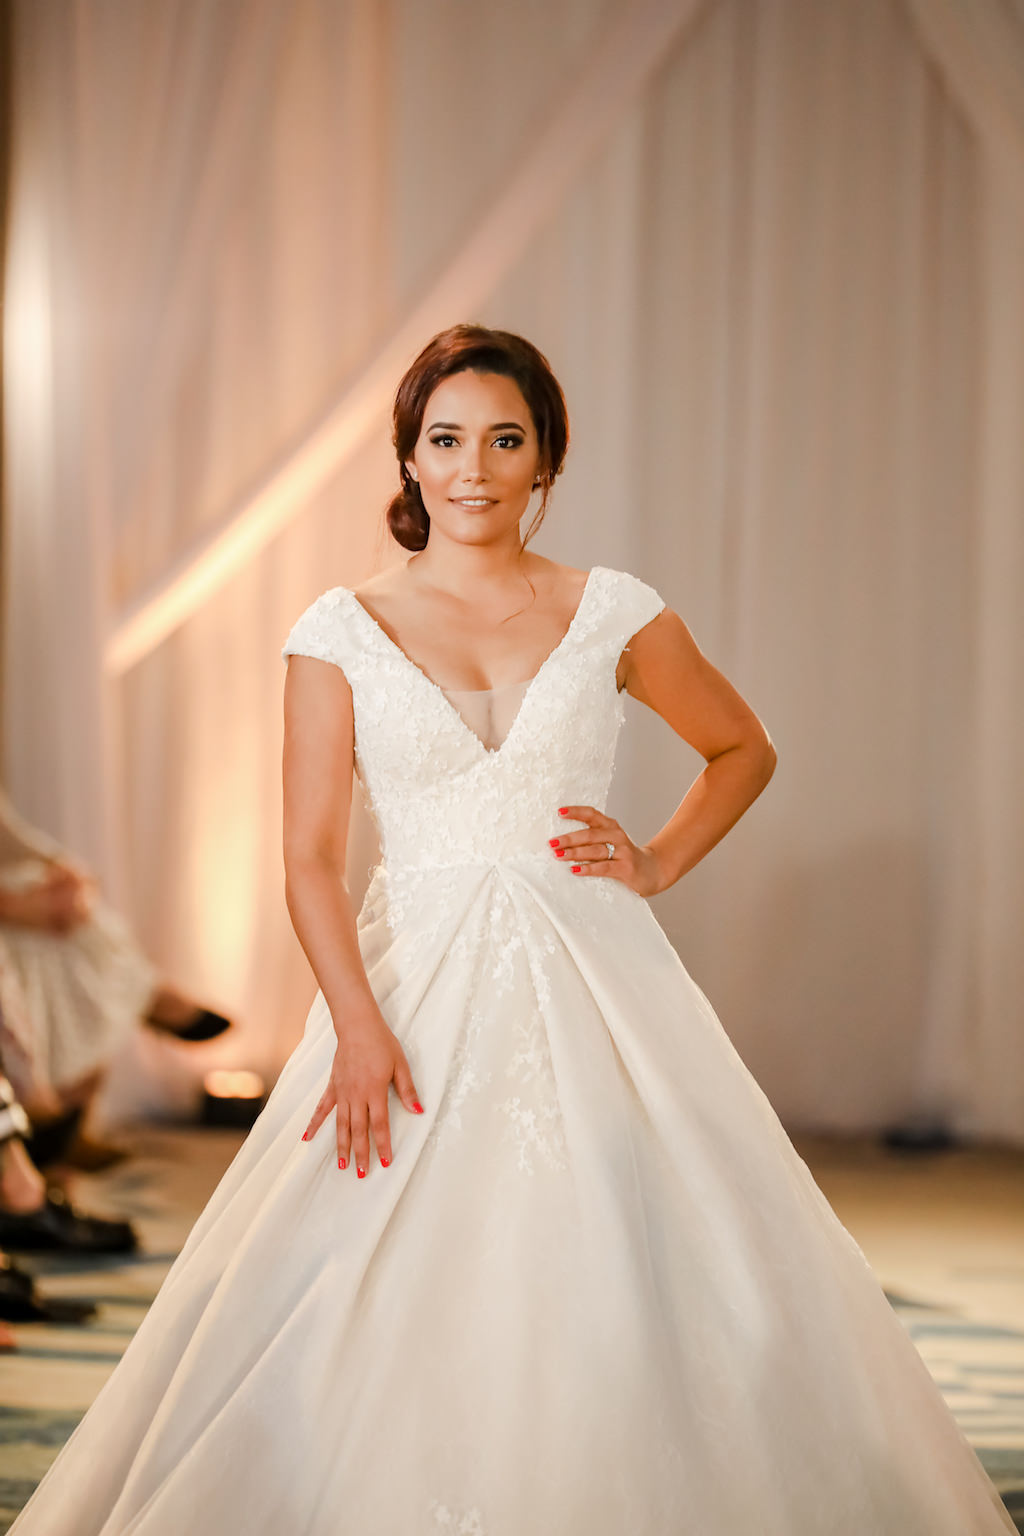 Classic, White Ballgown Style Wedding Dress, Cap Sleeves | Designer Matthew Christopher | Truly Forever Bridal | The Ritz Carlton Sarasota | Planner NK Weddings